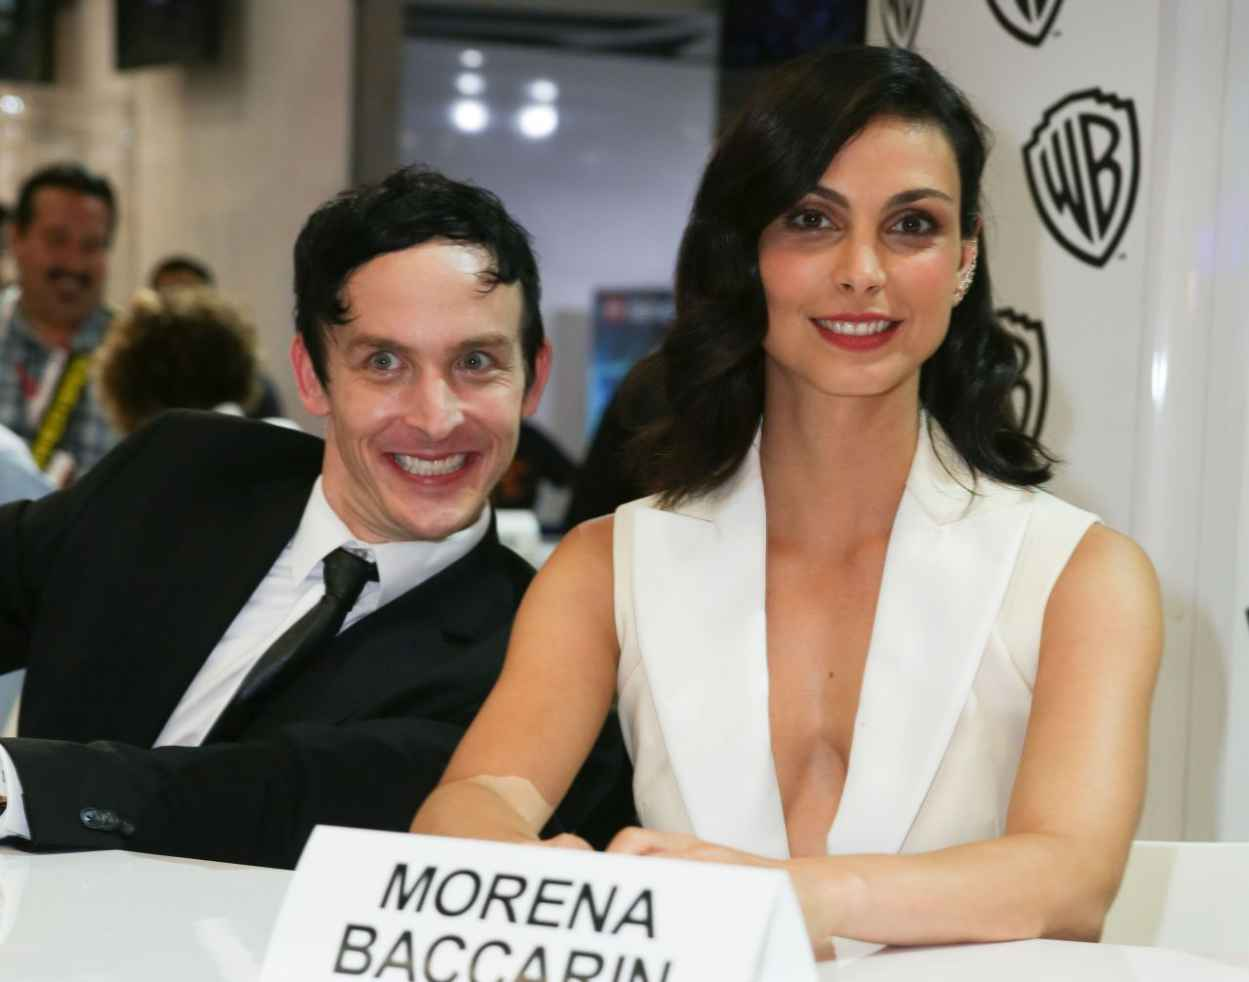 Morena Baccarin - WB Booth at Comic Con in San Diego, July 2015-2